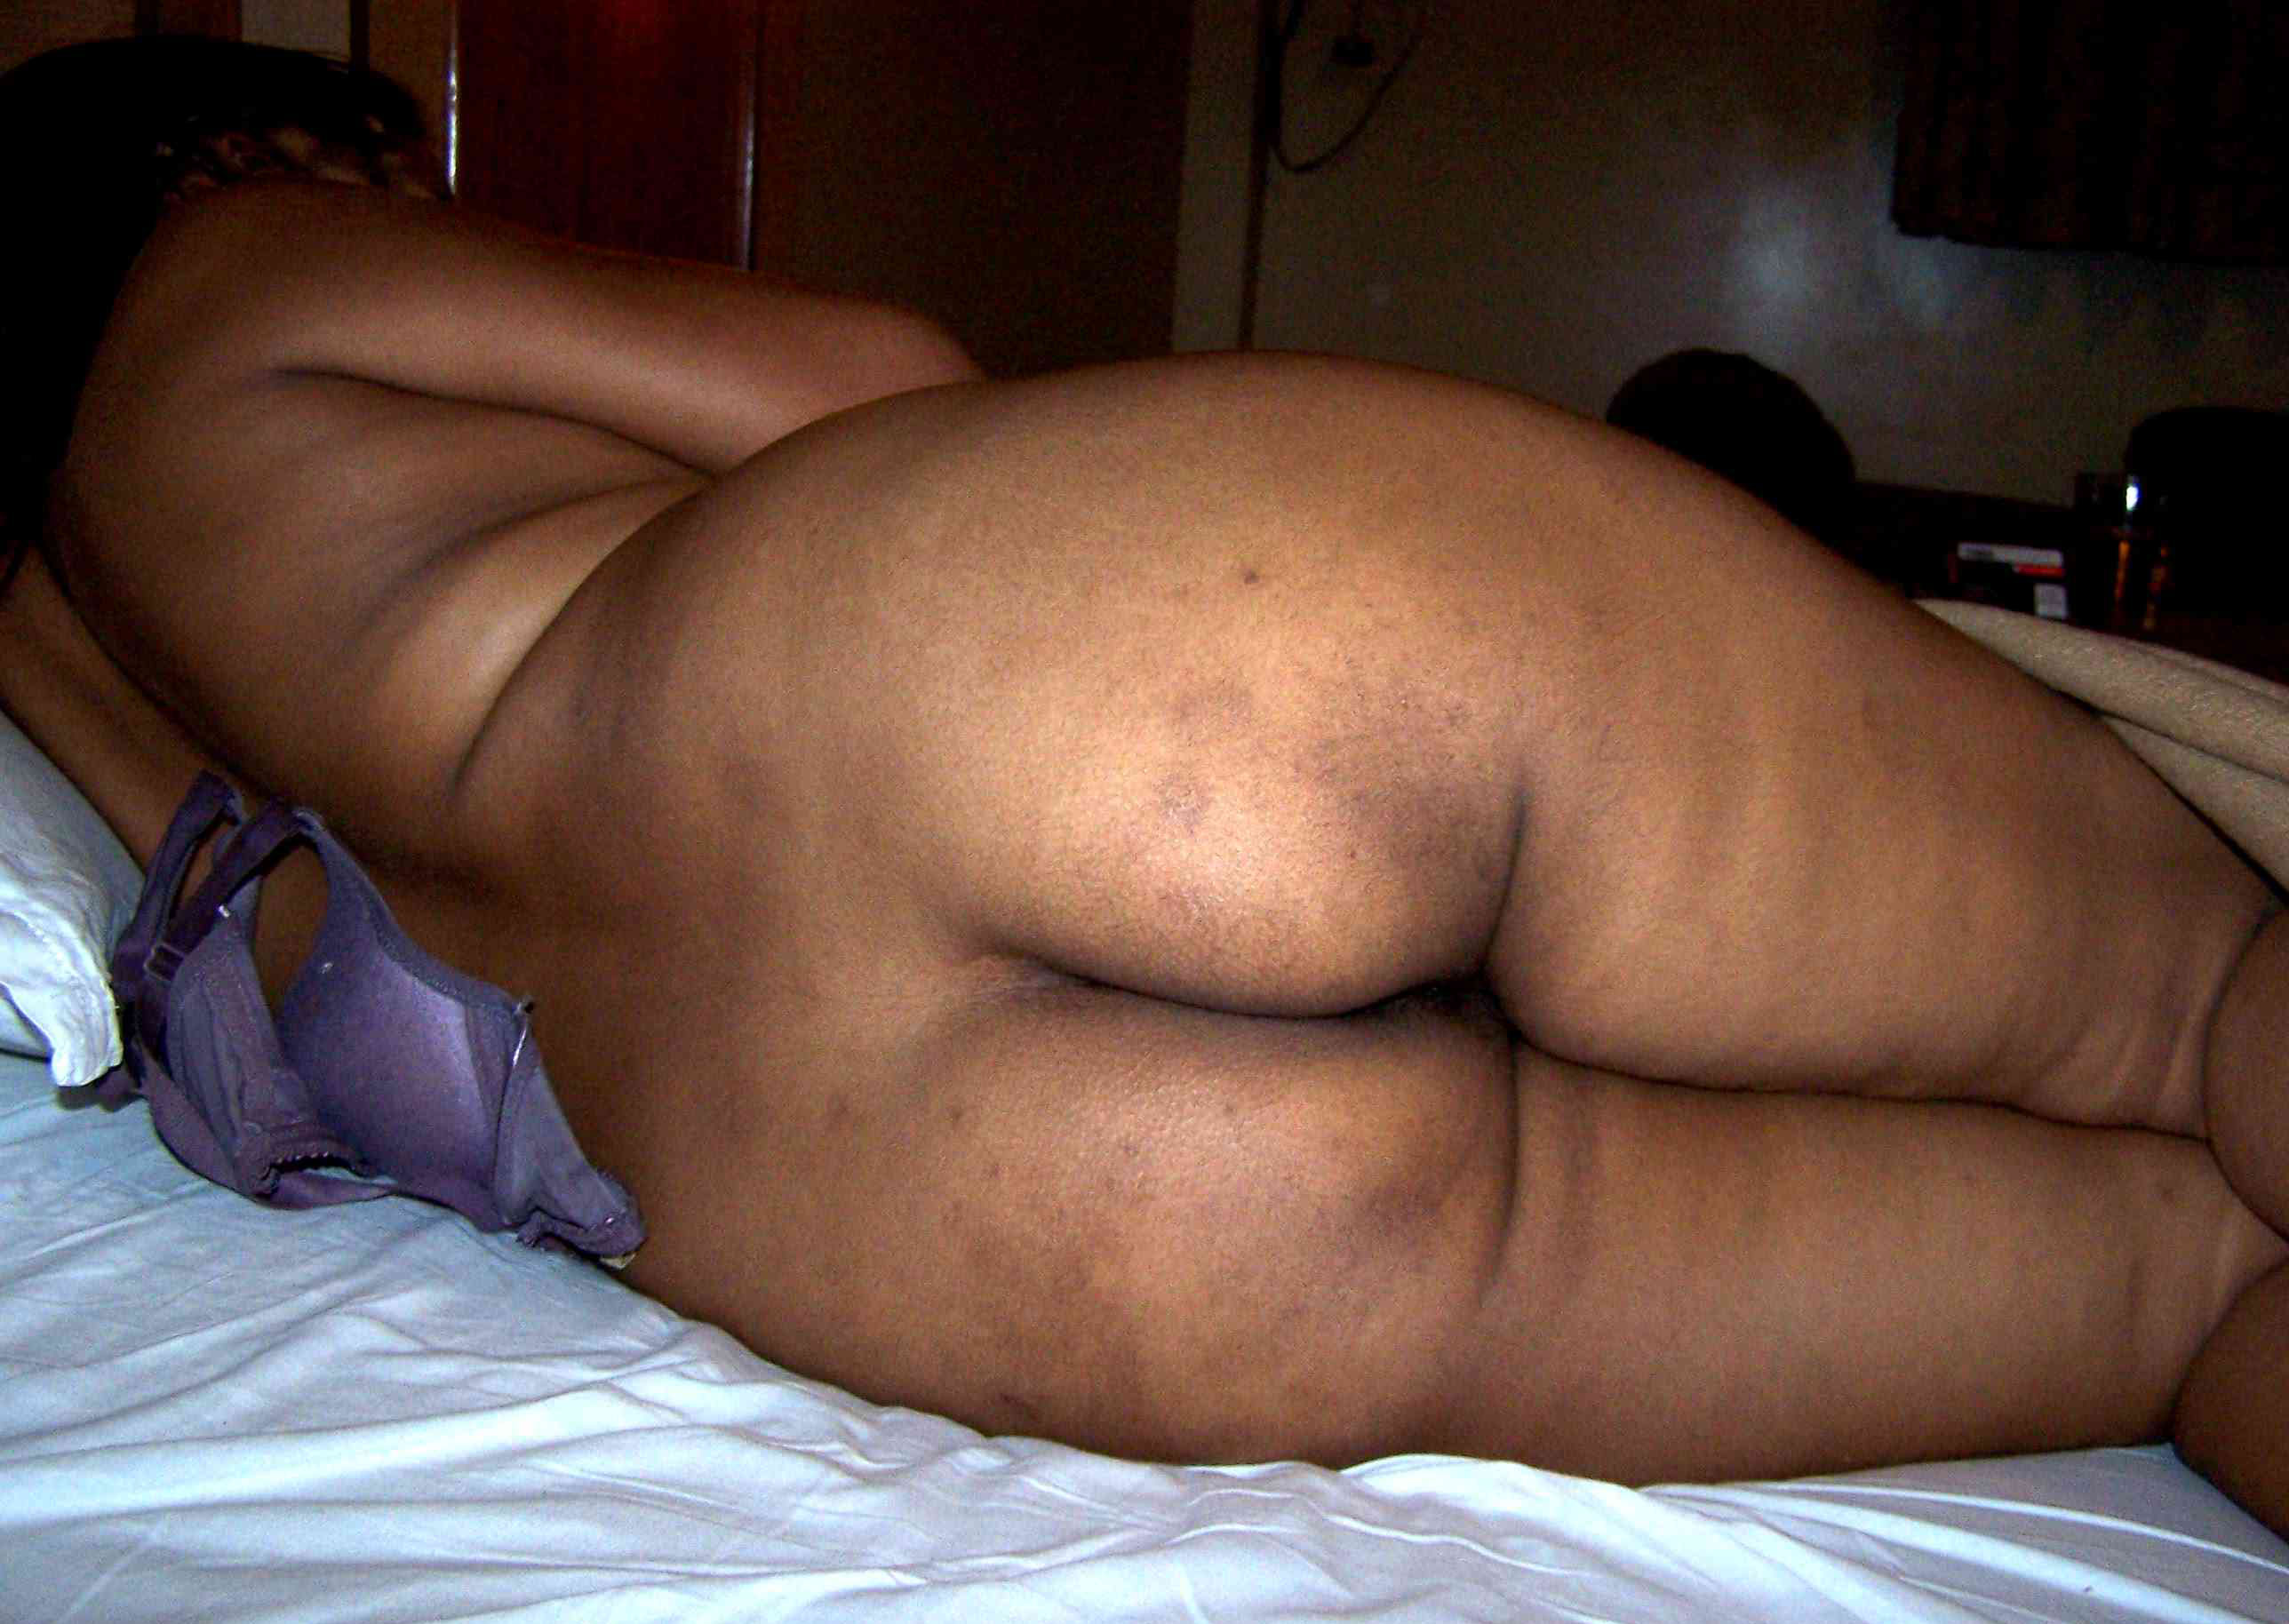 big ass indian aunty full nude huge ass pics collection